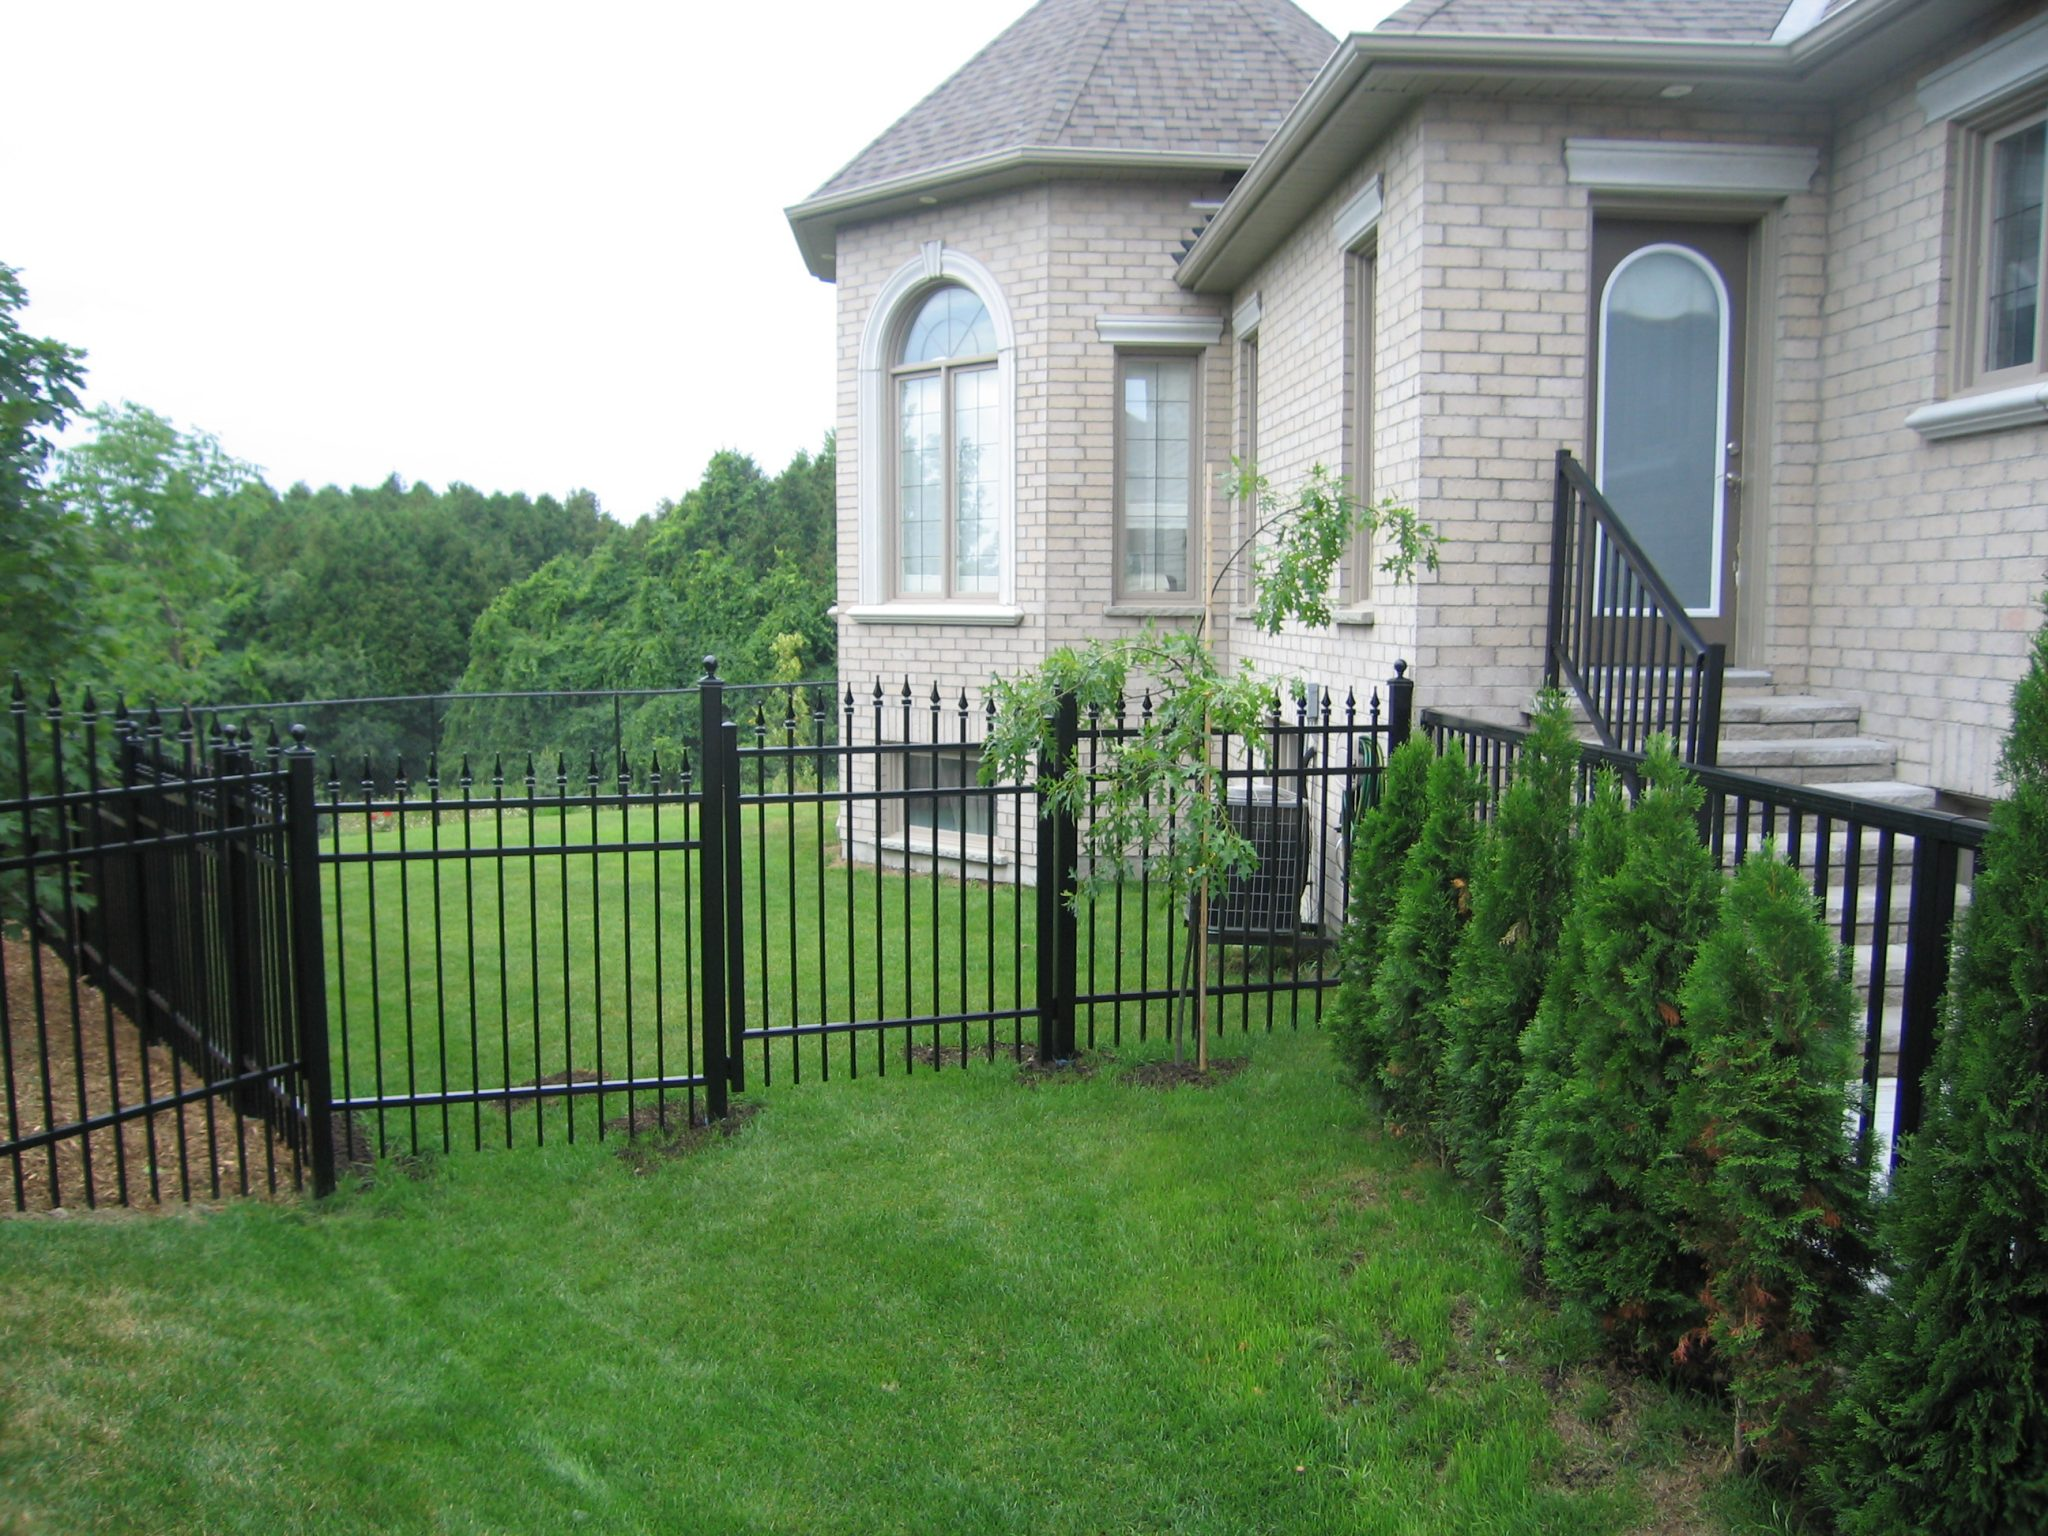 Back yard fencing with gate.